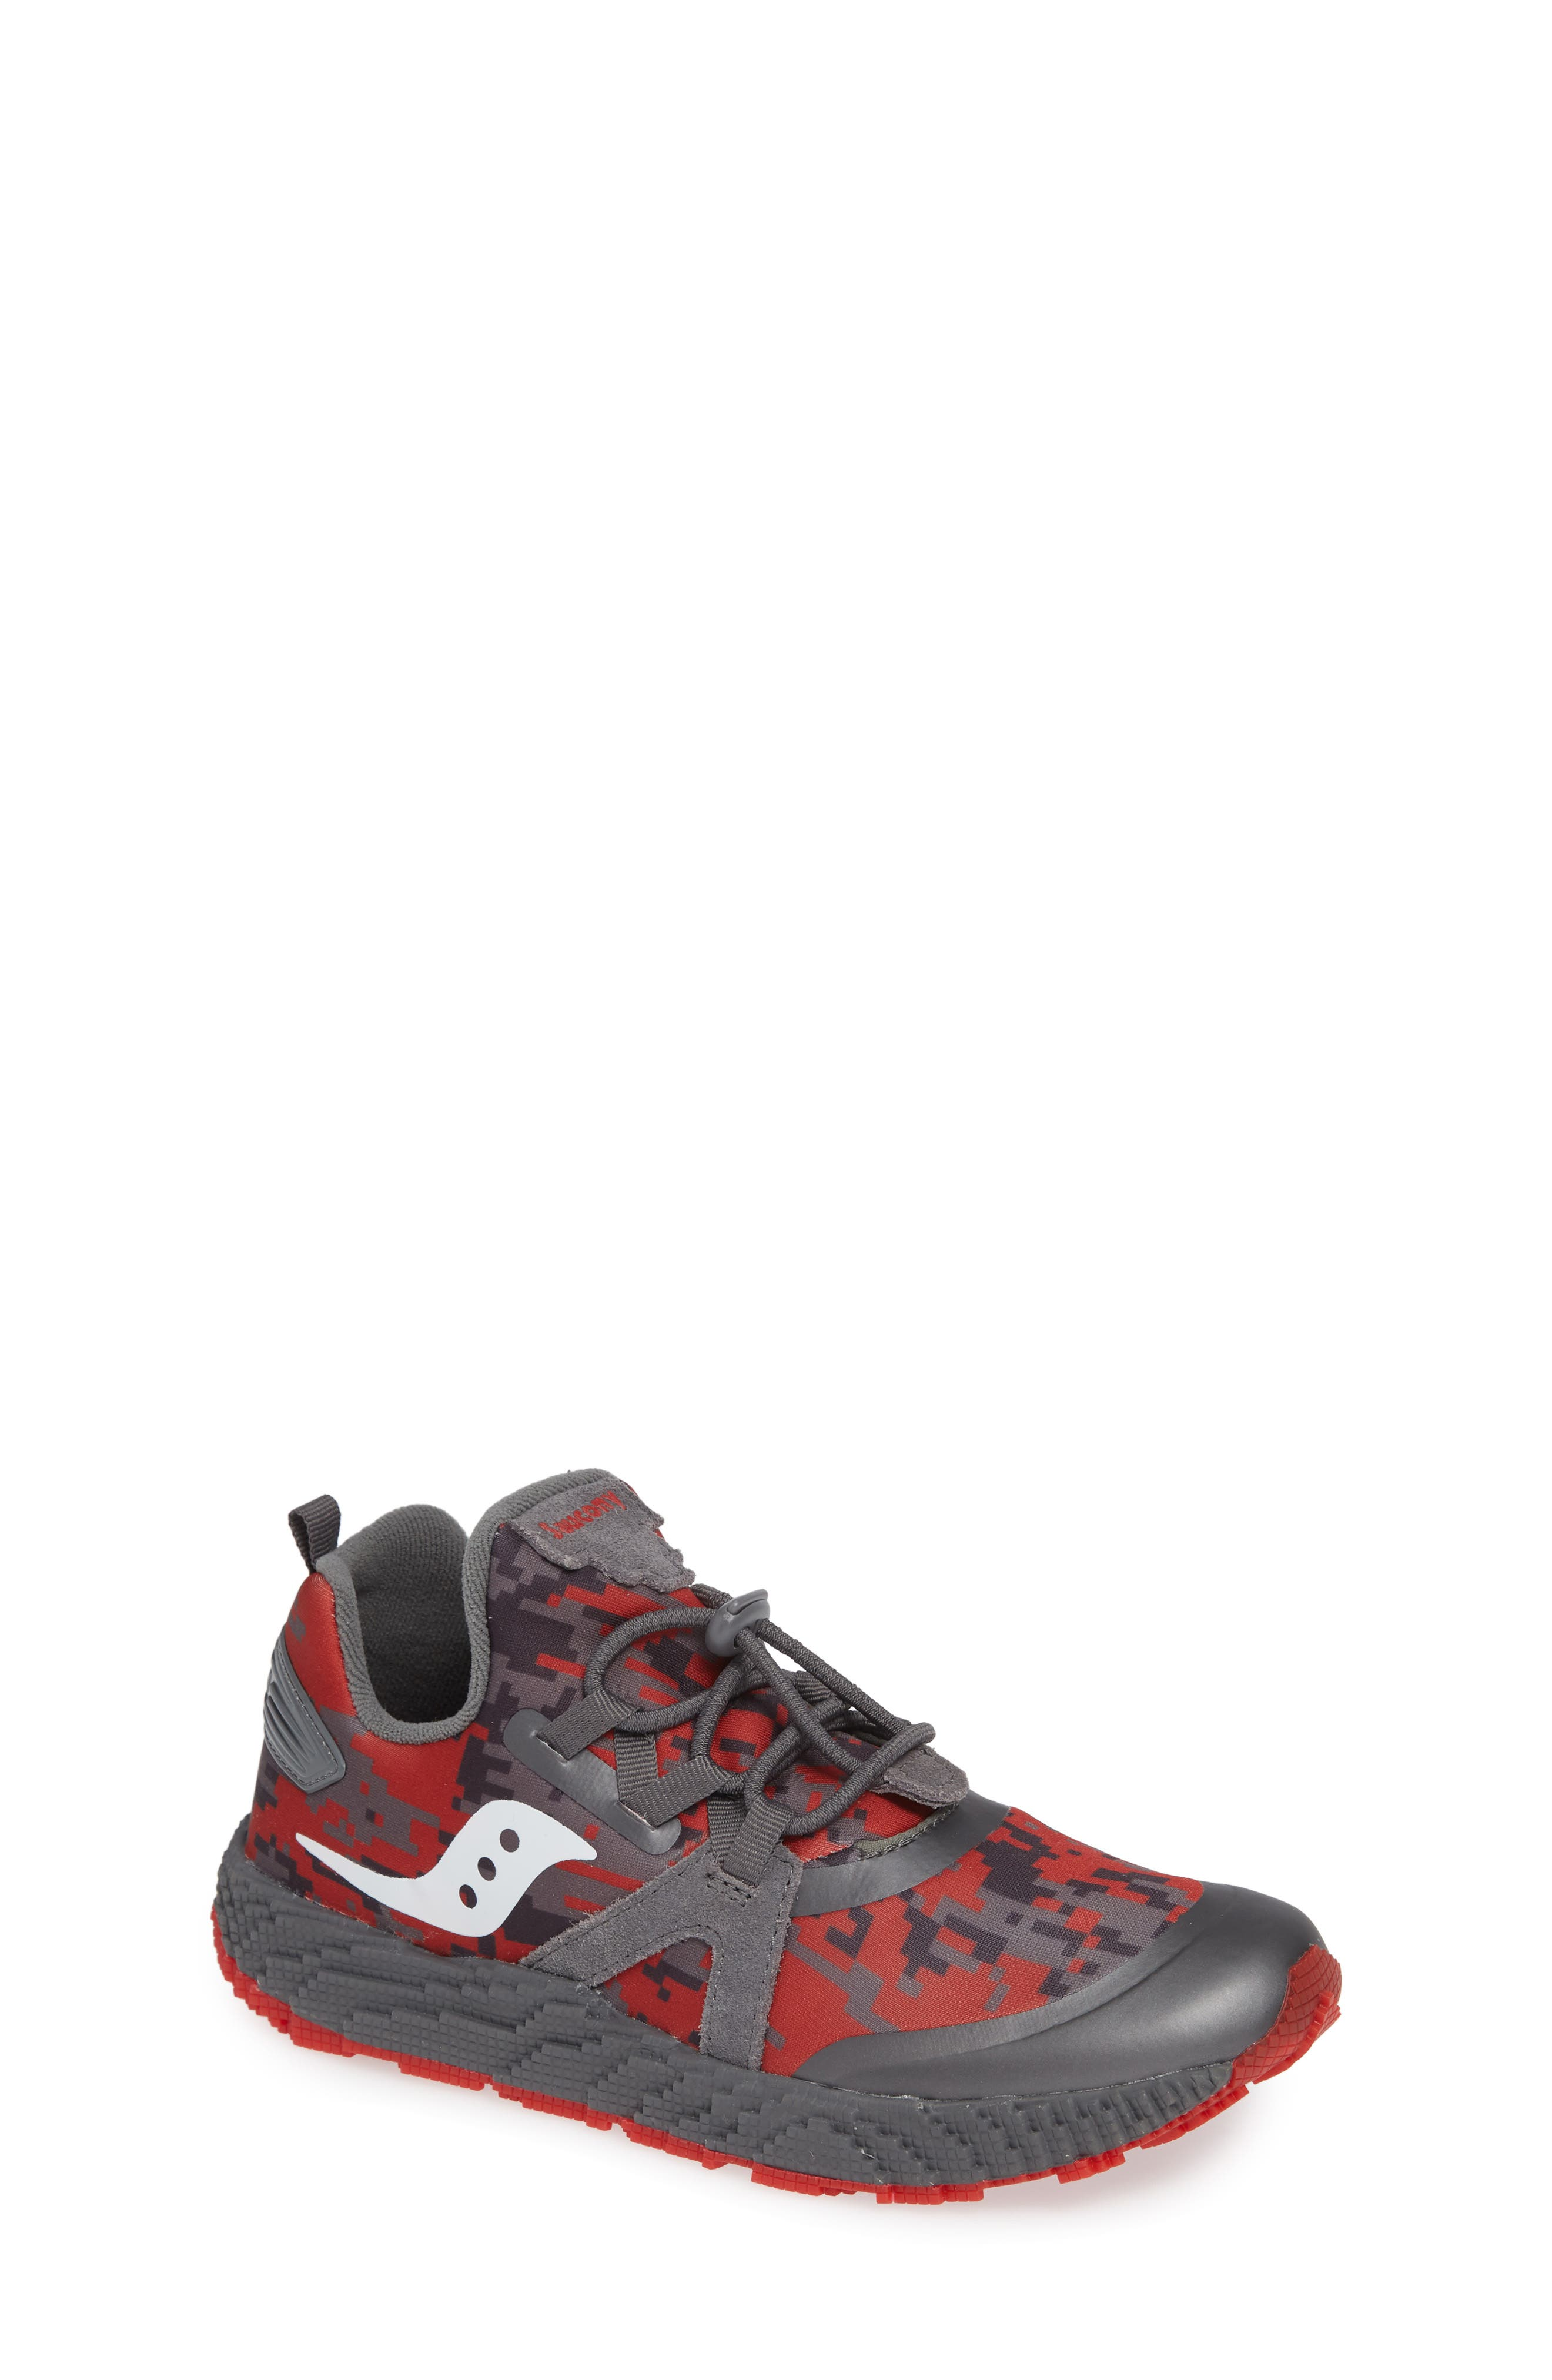 Voxel 9000 Sneaker,                         Main,                         color, GREY LEATHER/ MESH 2